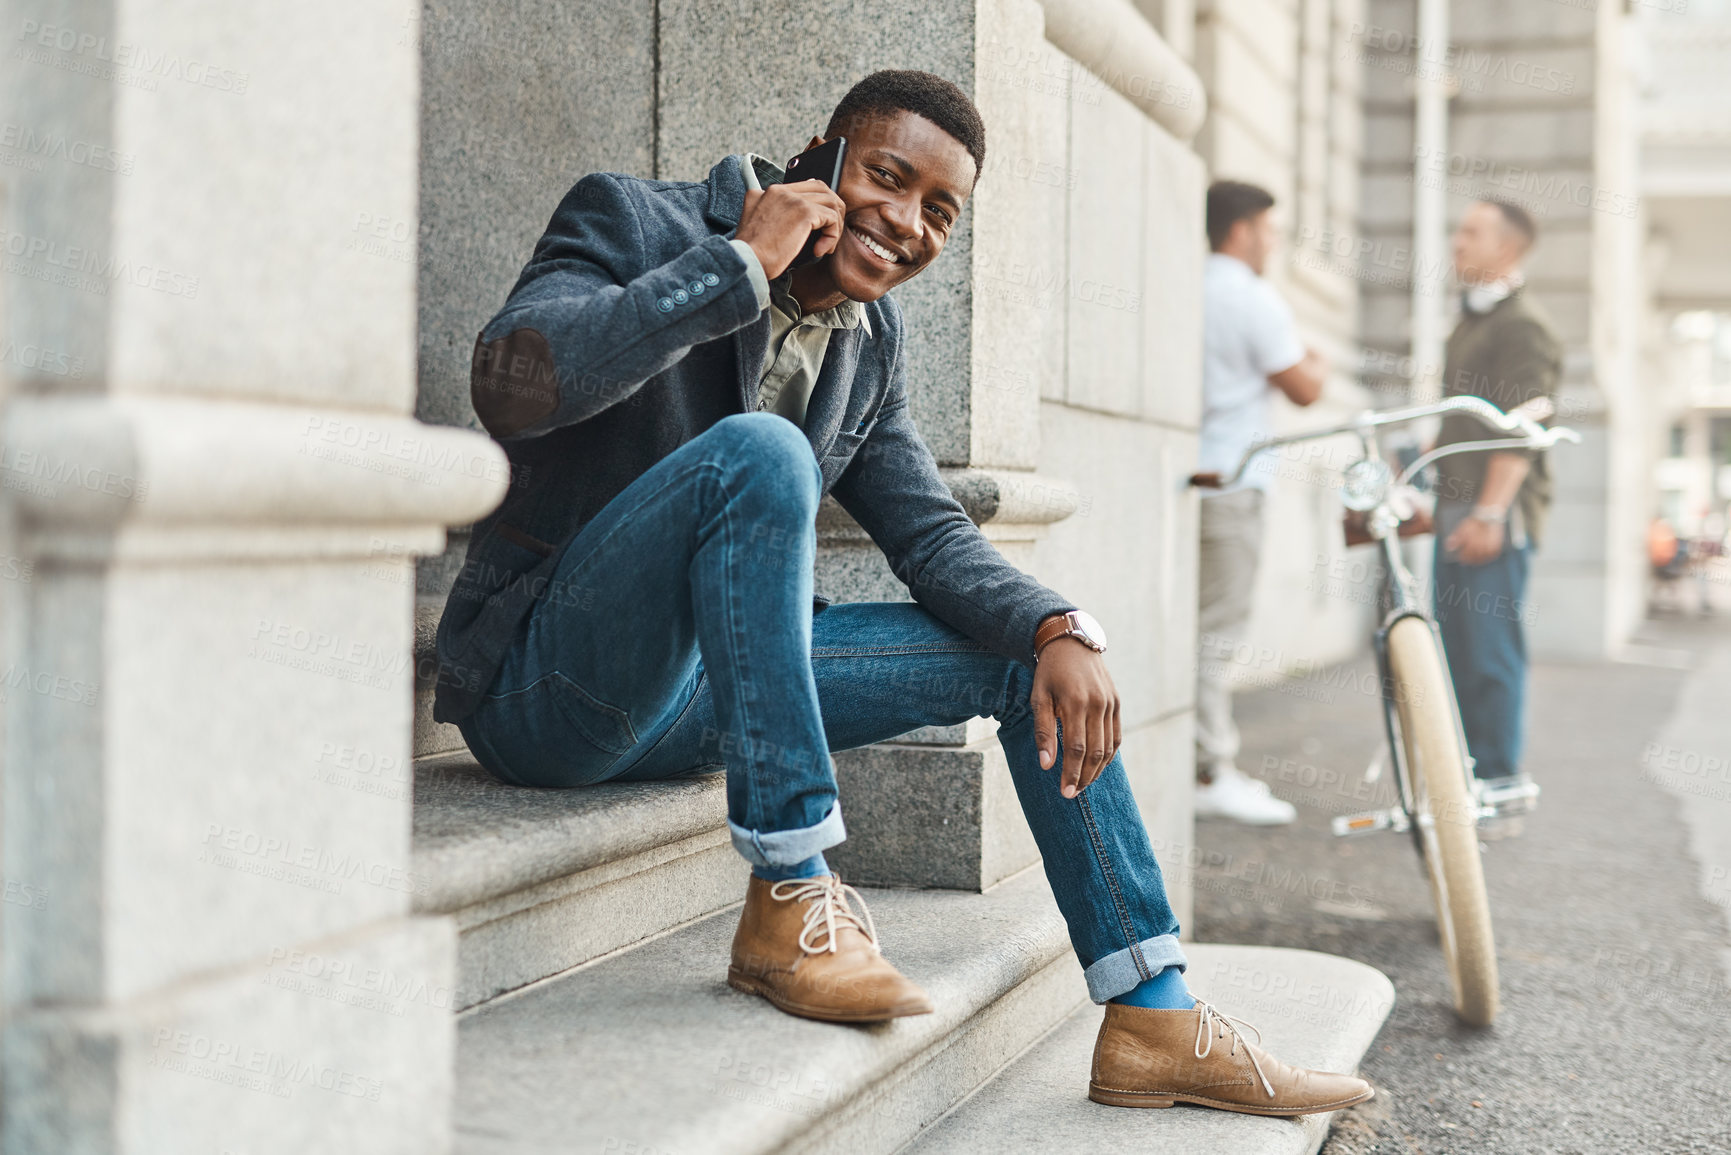 Buy stock photo Shot of a young businessman using a smartphone against an urban background